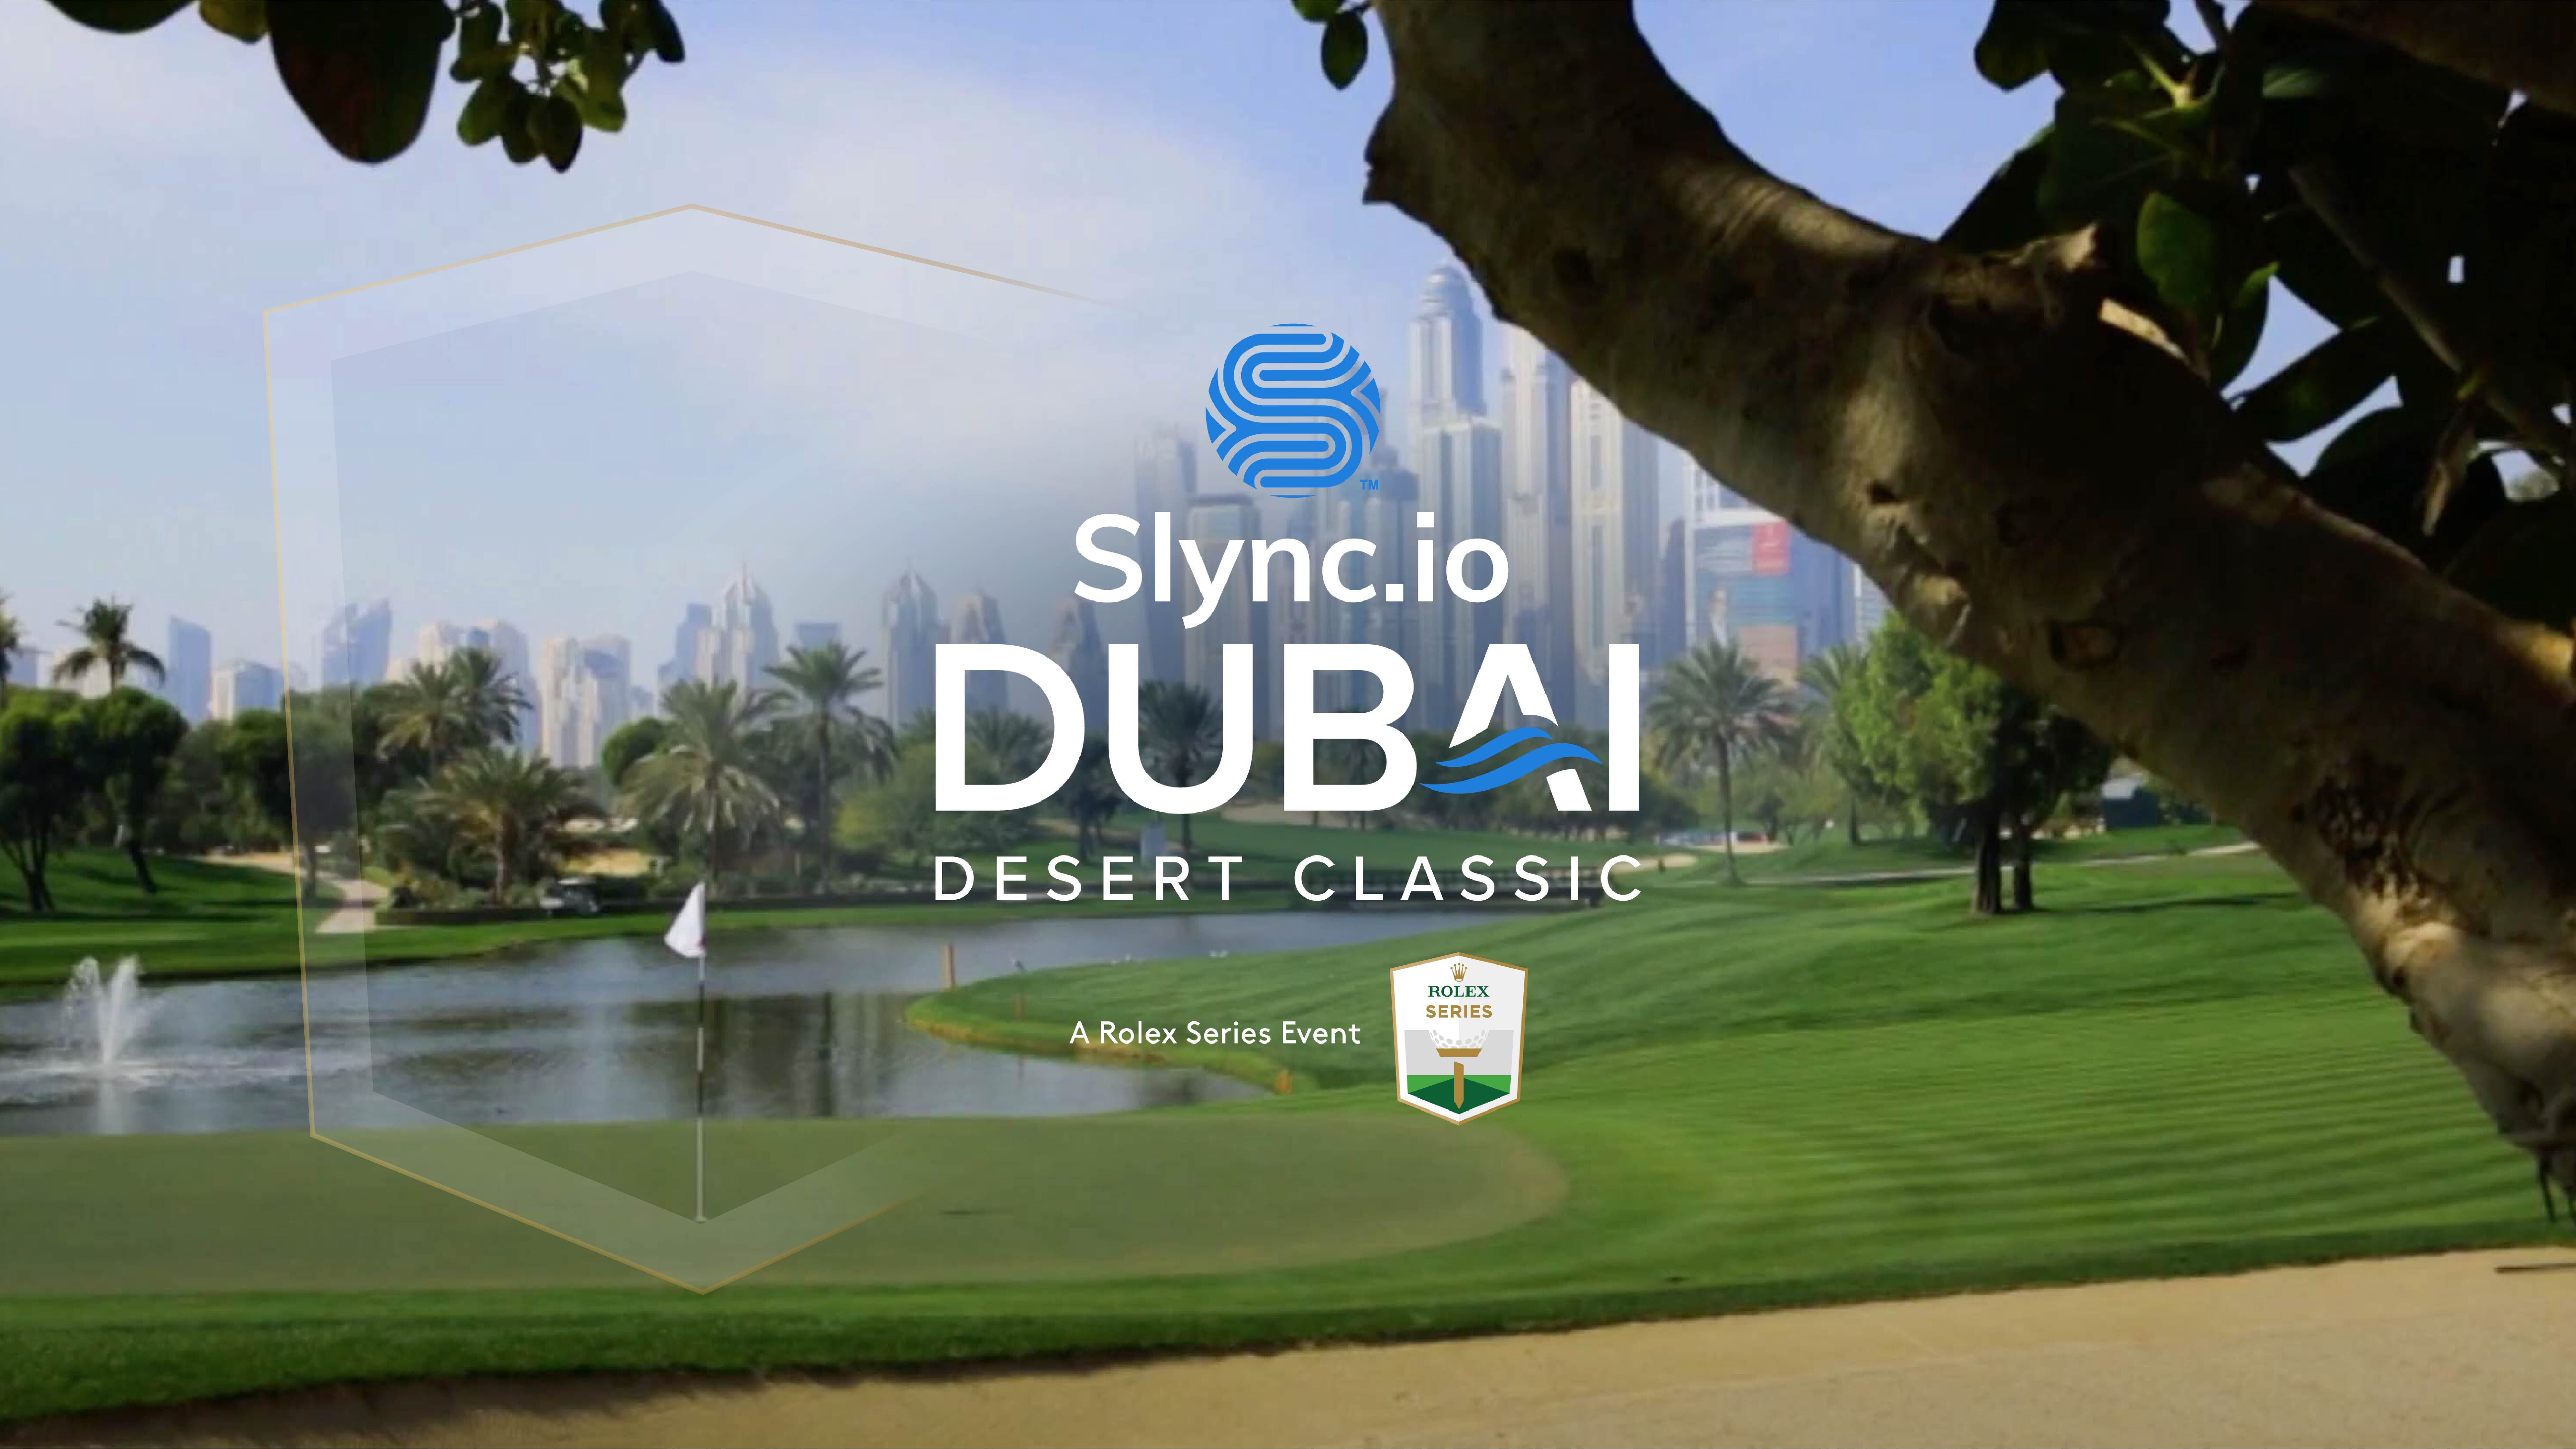 Slync.io is the new title sponsor of the Dubai Desert Classic—an iconic event that is now a part of the European Tour's Rolex Series